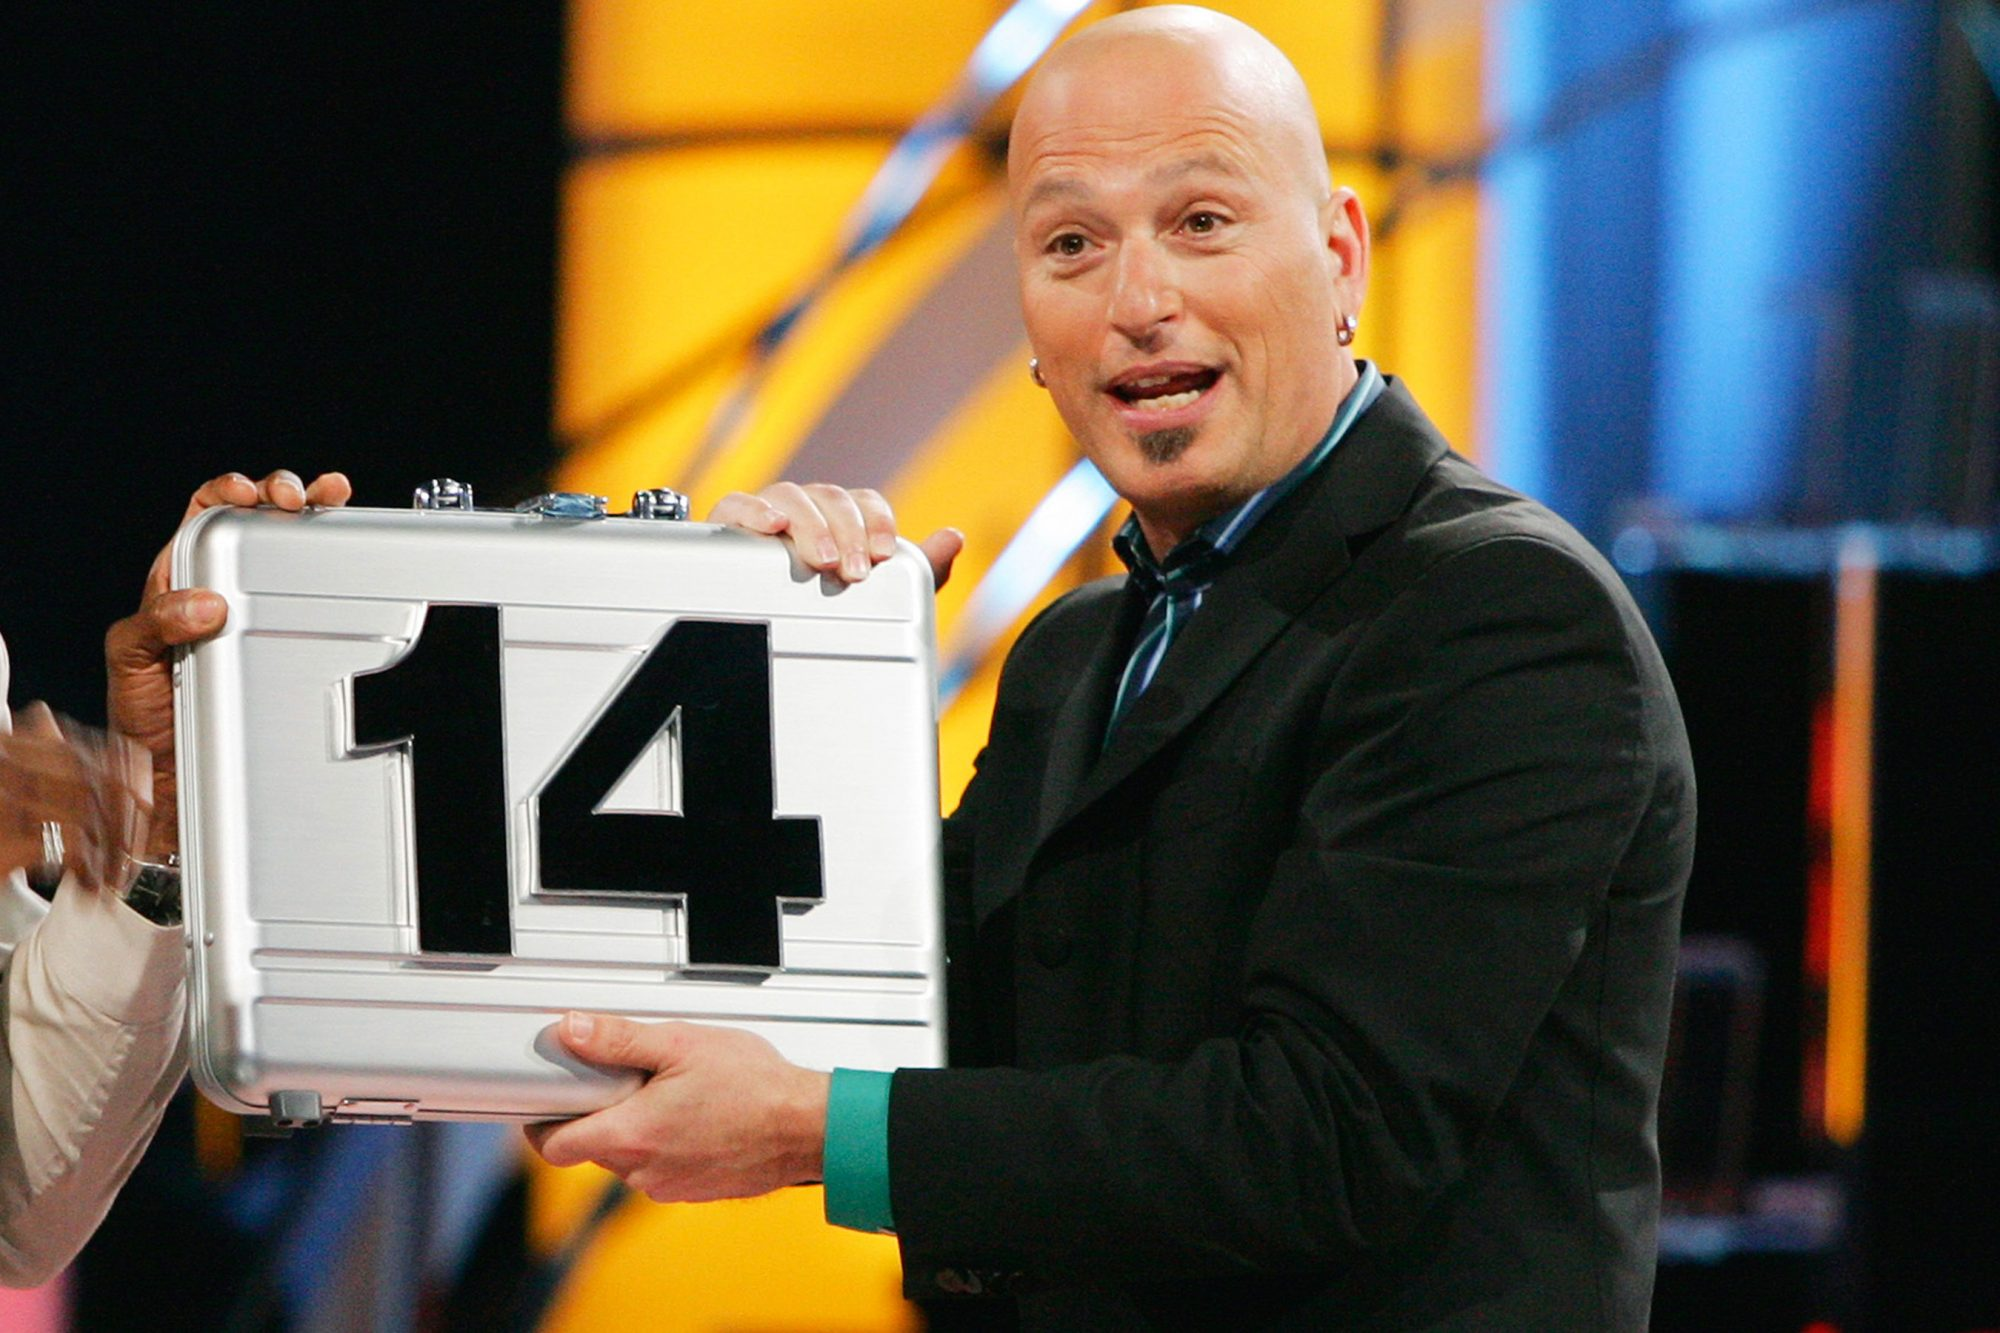 Deal Or No Deal Christmas 2020 Nbc Deal or No Deal returning with Howie Mandel on CNBC | EW.com